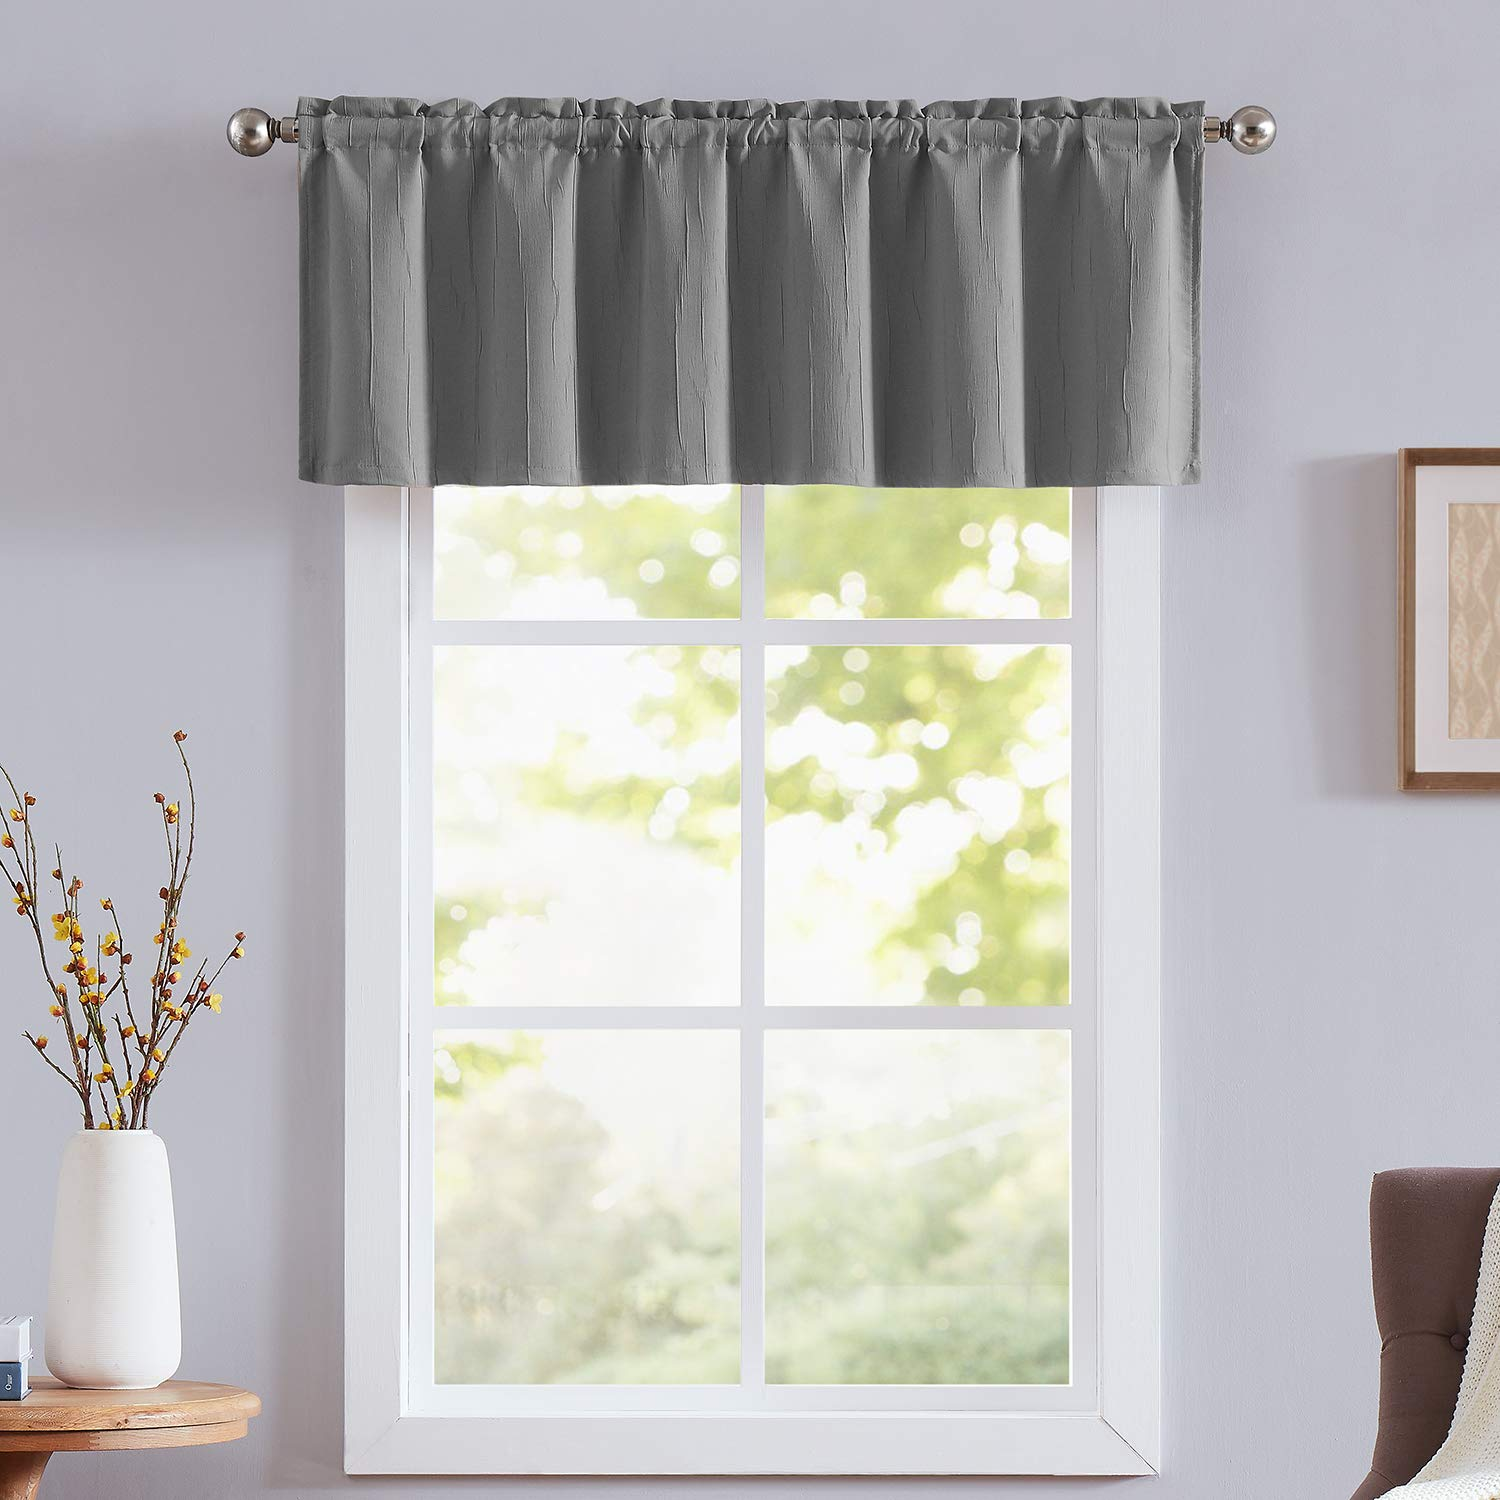 """NATWIN Linen Floral Curtains for Bedroom 96 inches Long Room Darkening Moderate Half Blackout Window Drapes for Living Room Beige 42/"""" Width x 2 Panels"""